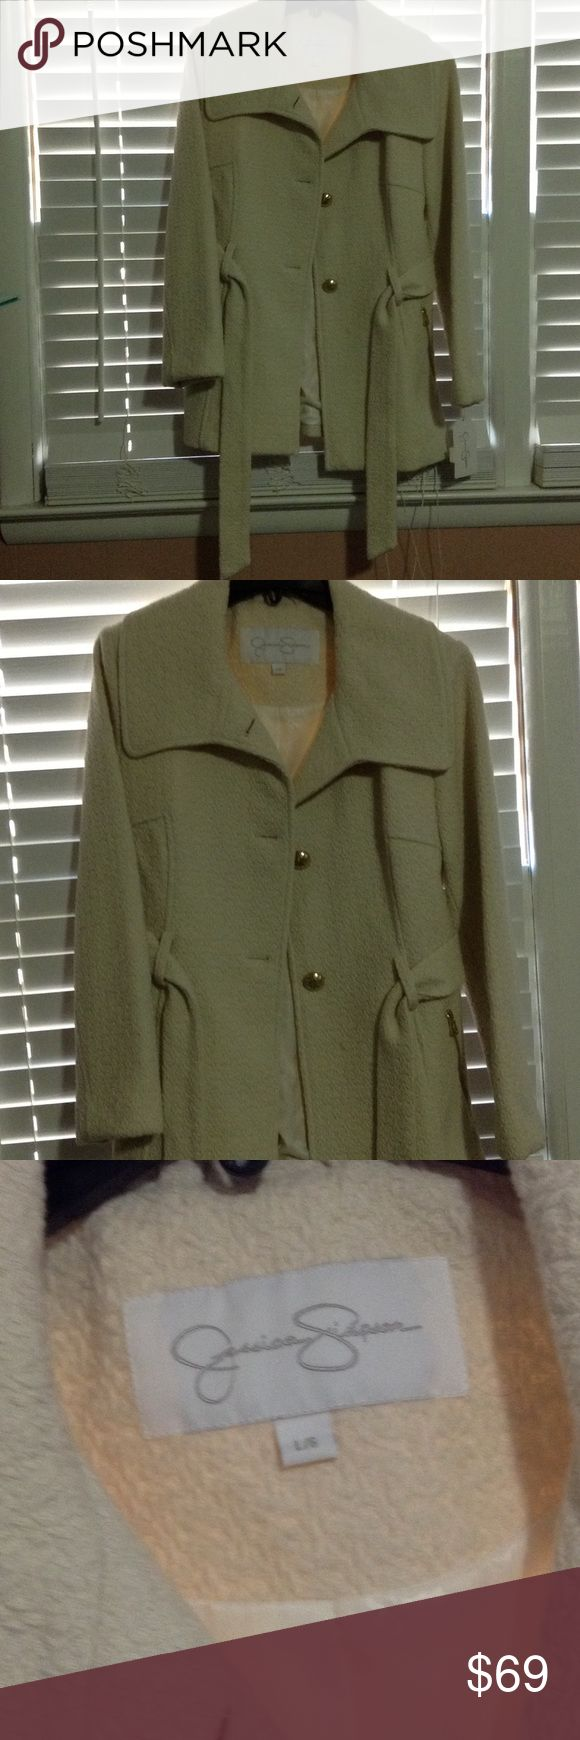 NWT Jessica Simpson Coat New with tags! Jessica Simpson Coat Jessica Simpson Jackets & Coats